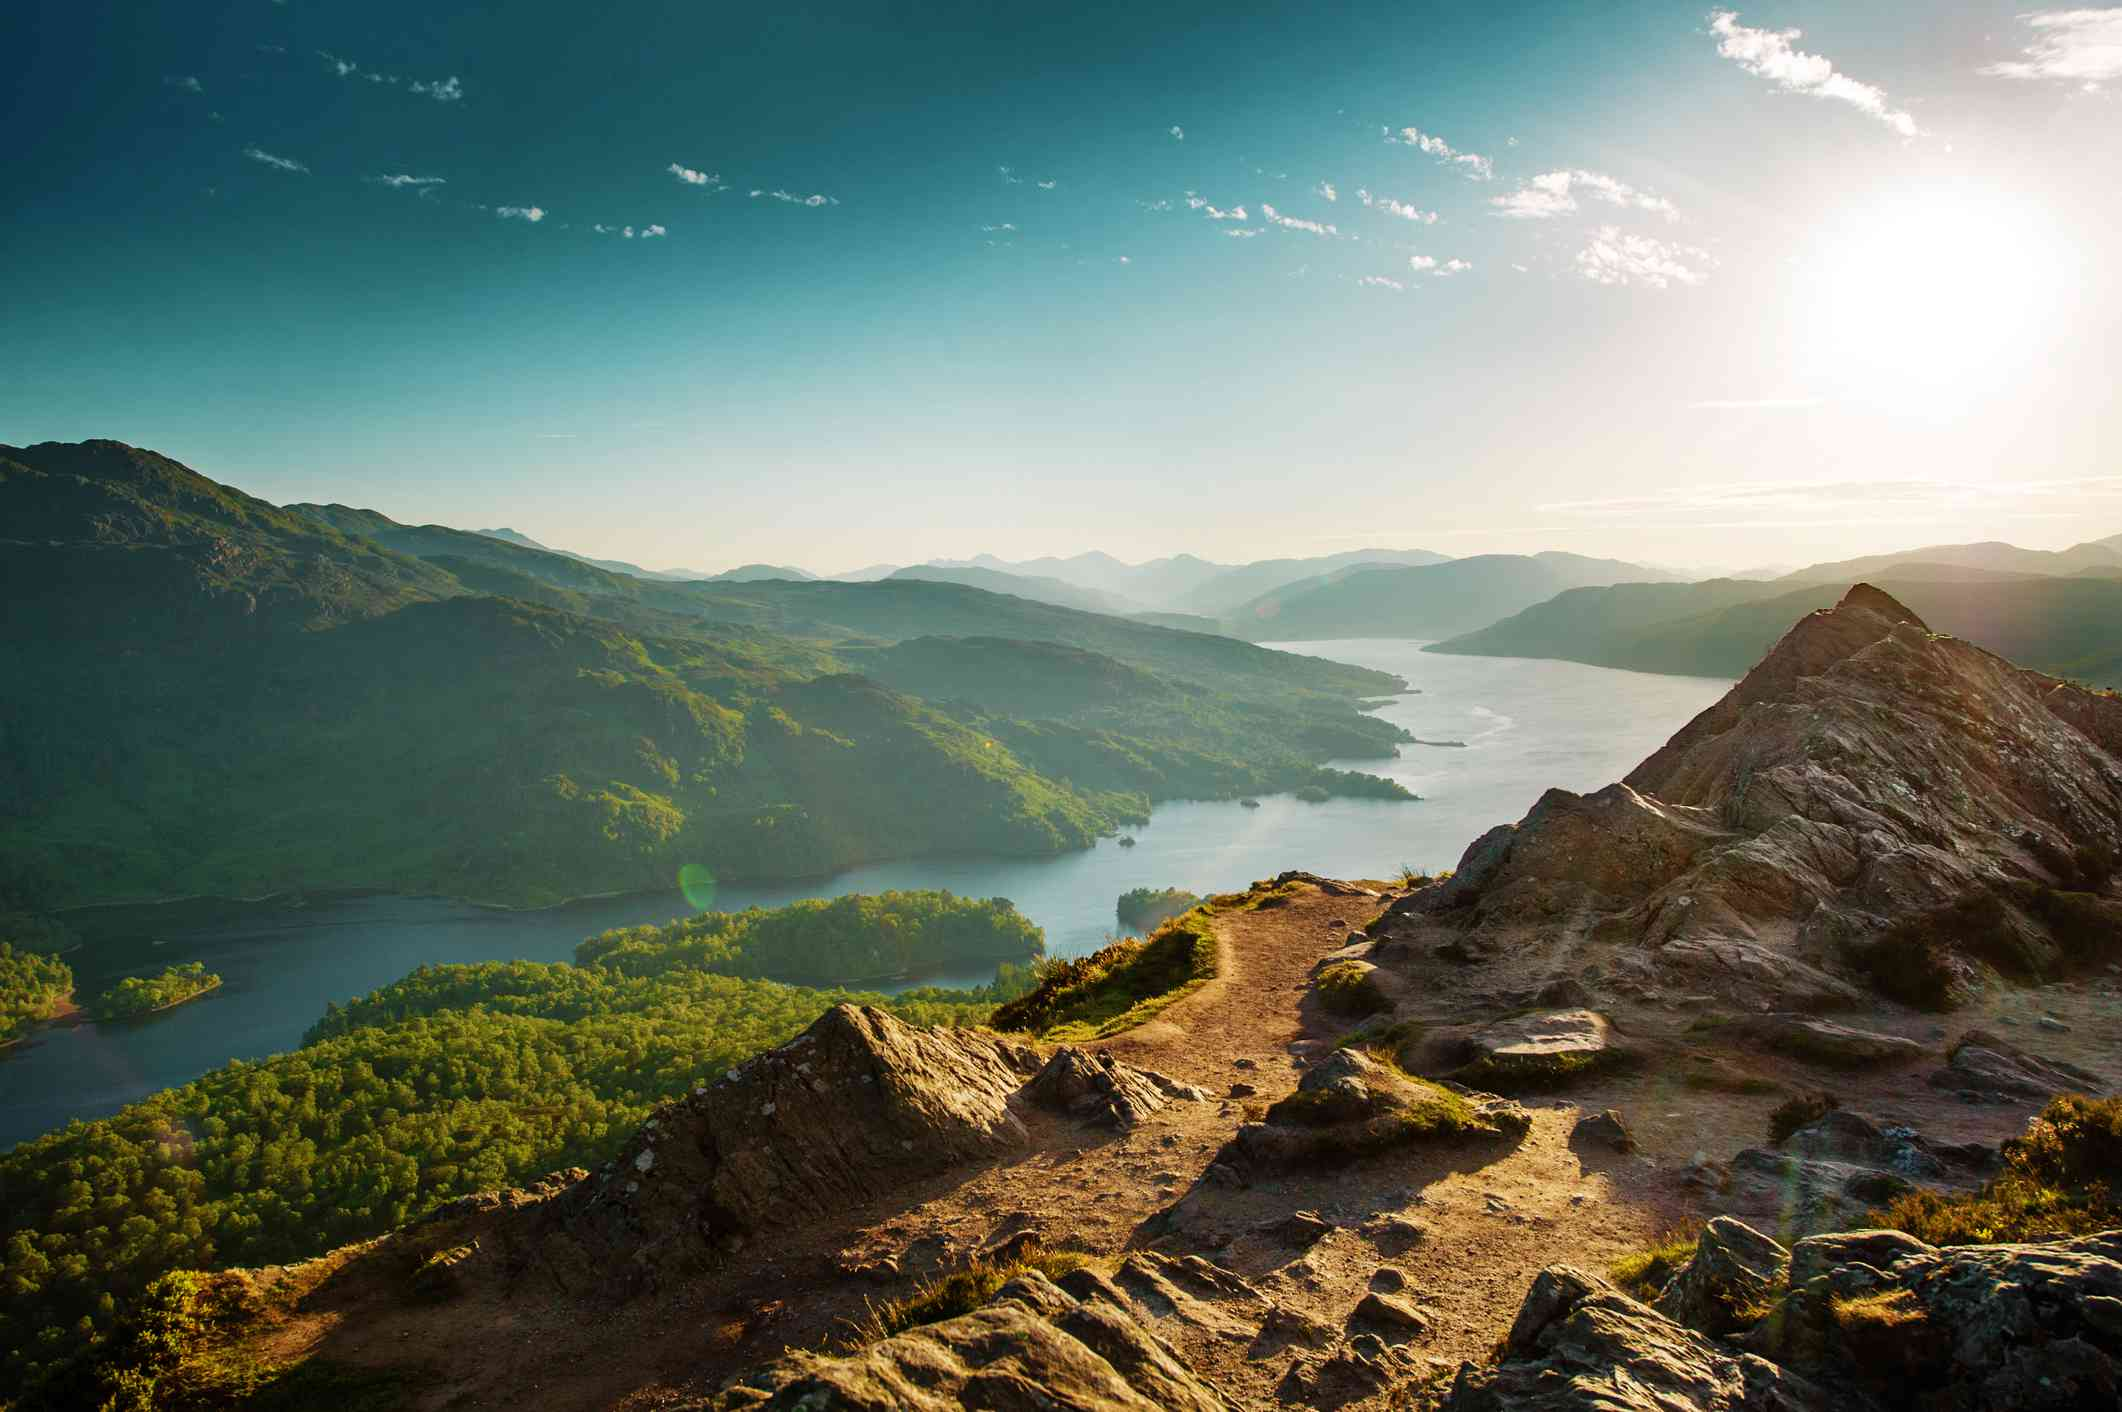 The Trossachs overlooking Loch Katerine with soft hazy light